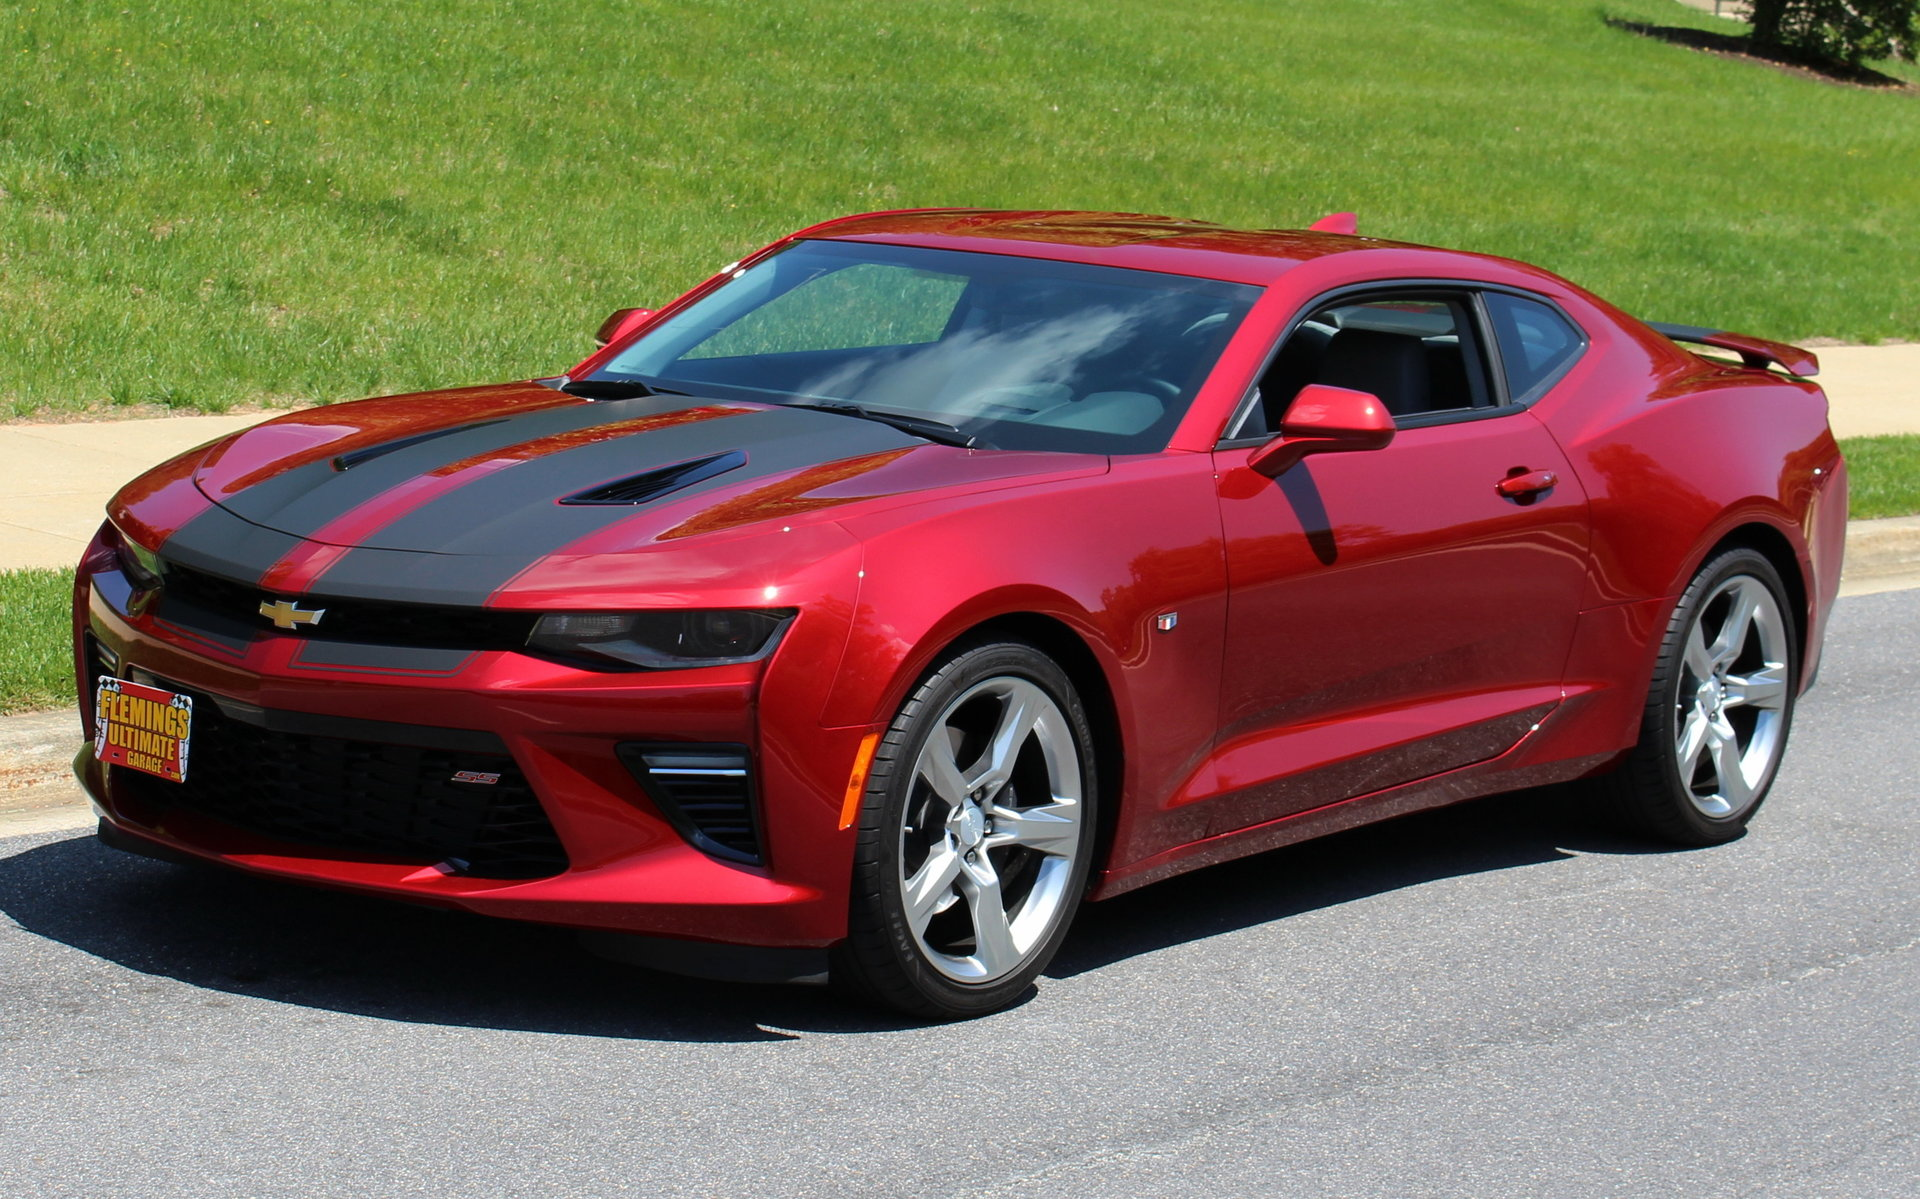 camaro 2ss chevrolet speed v8 auto specs chevelle gto vehicles impala hd coupe purchase factory trans flemings exotic